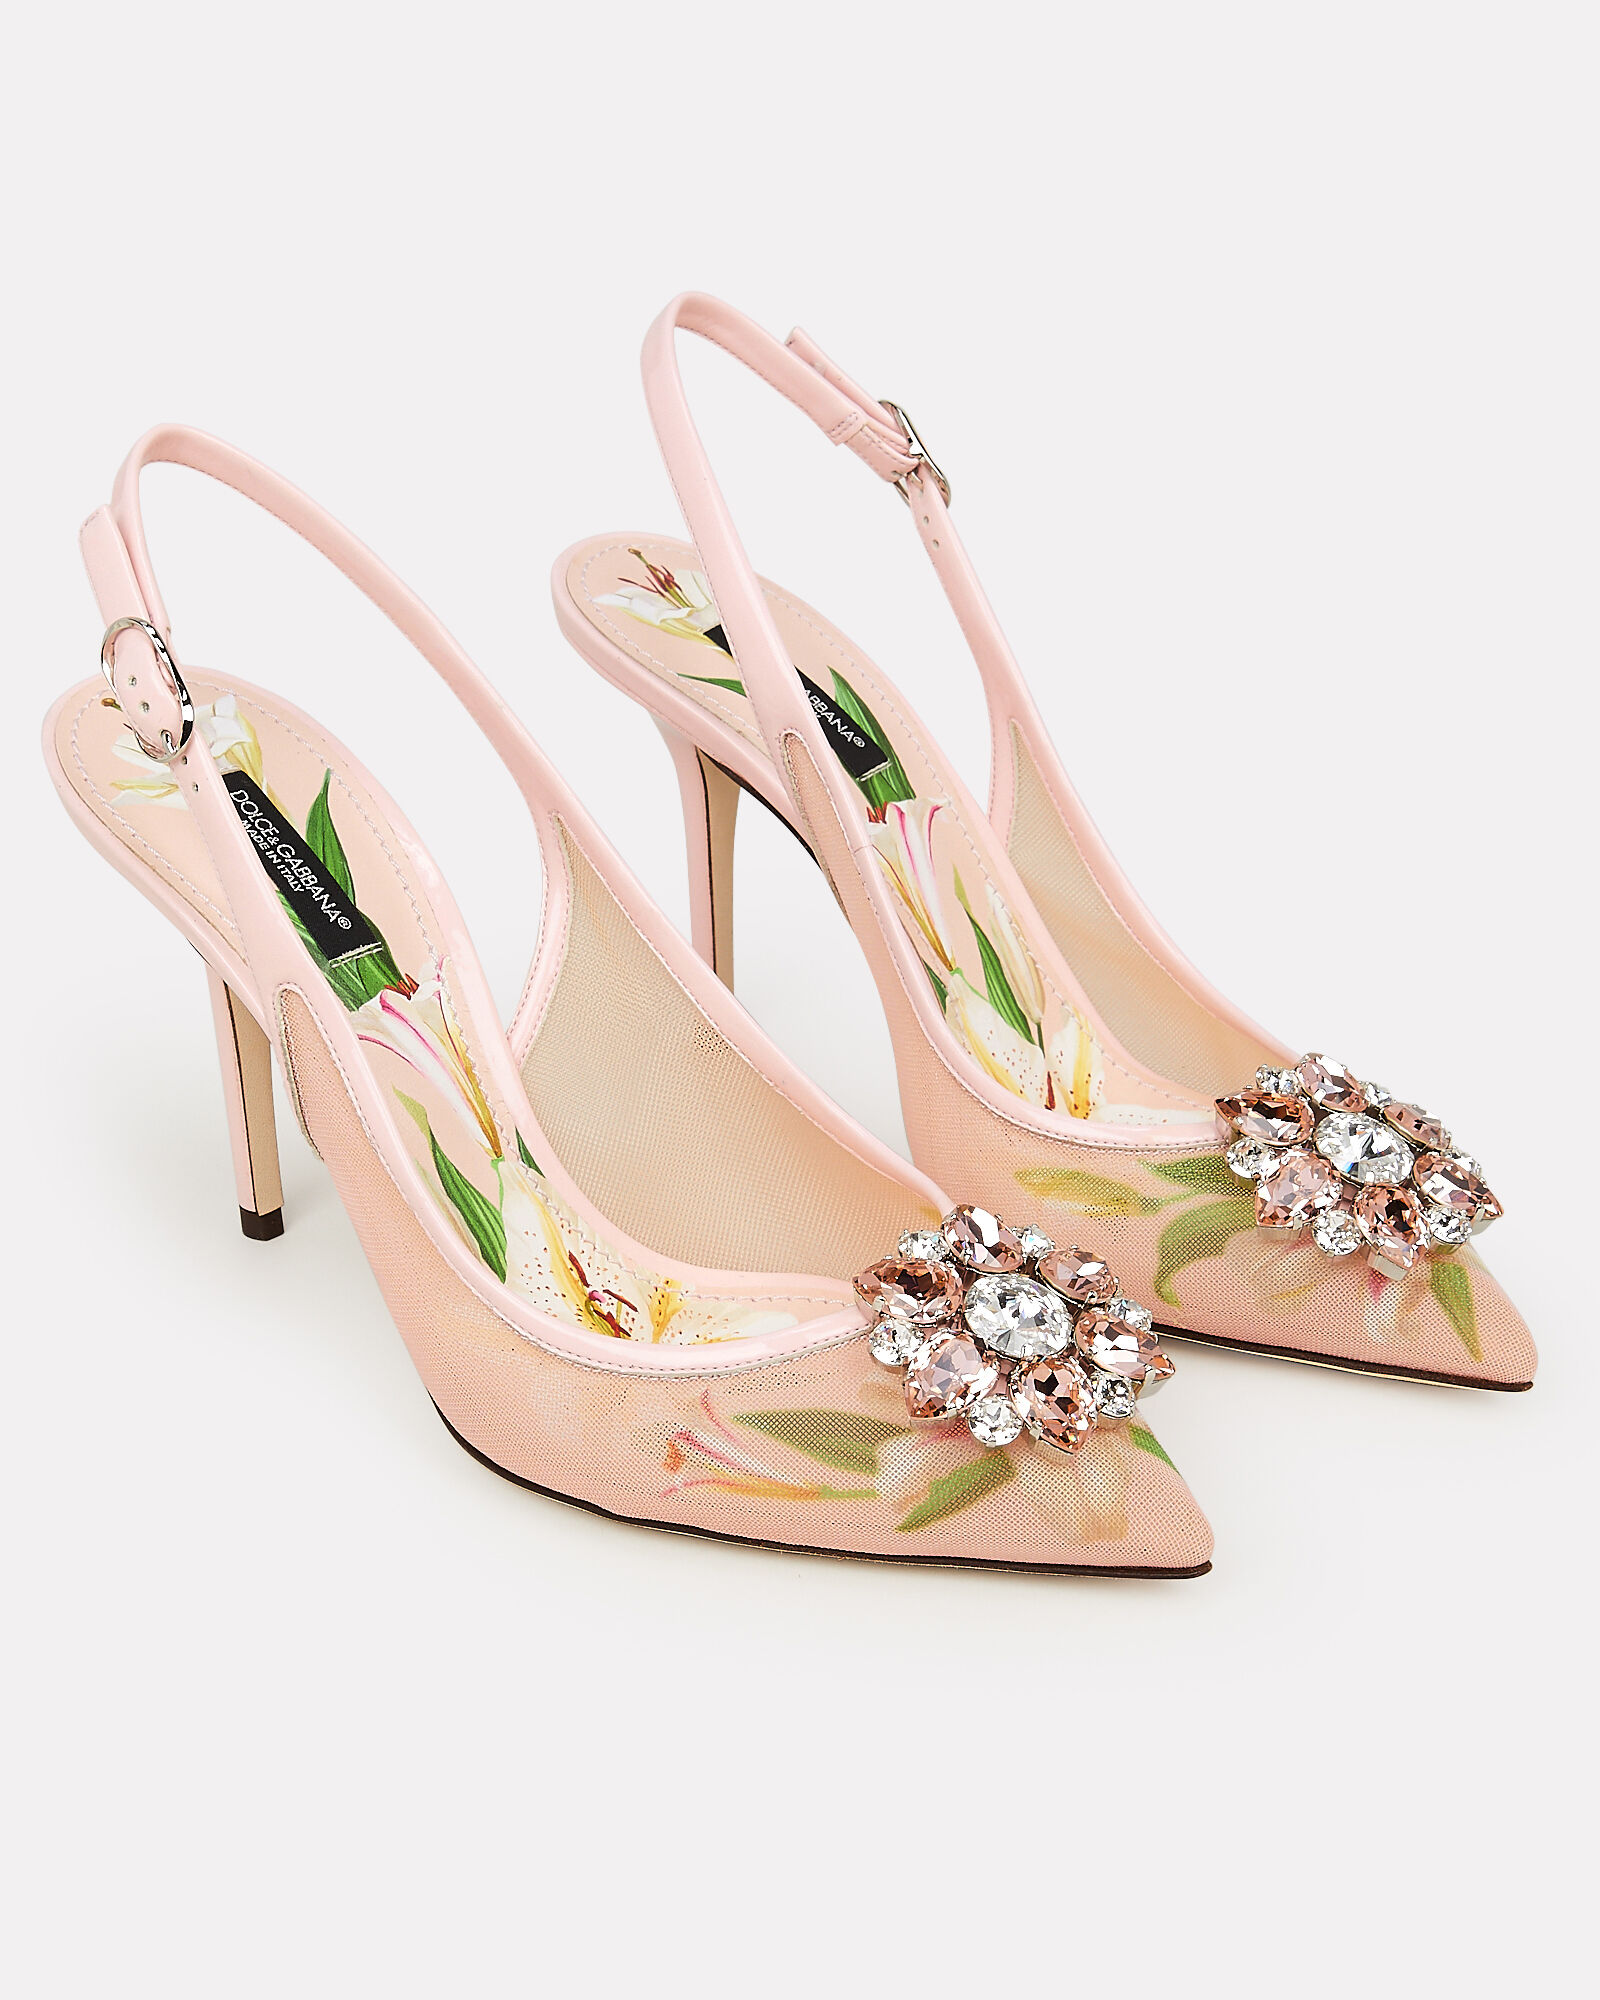 Bellucci Mesh Slingback Pumps, BLUSH, hi-res